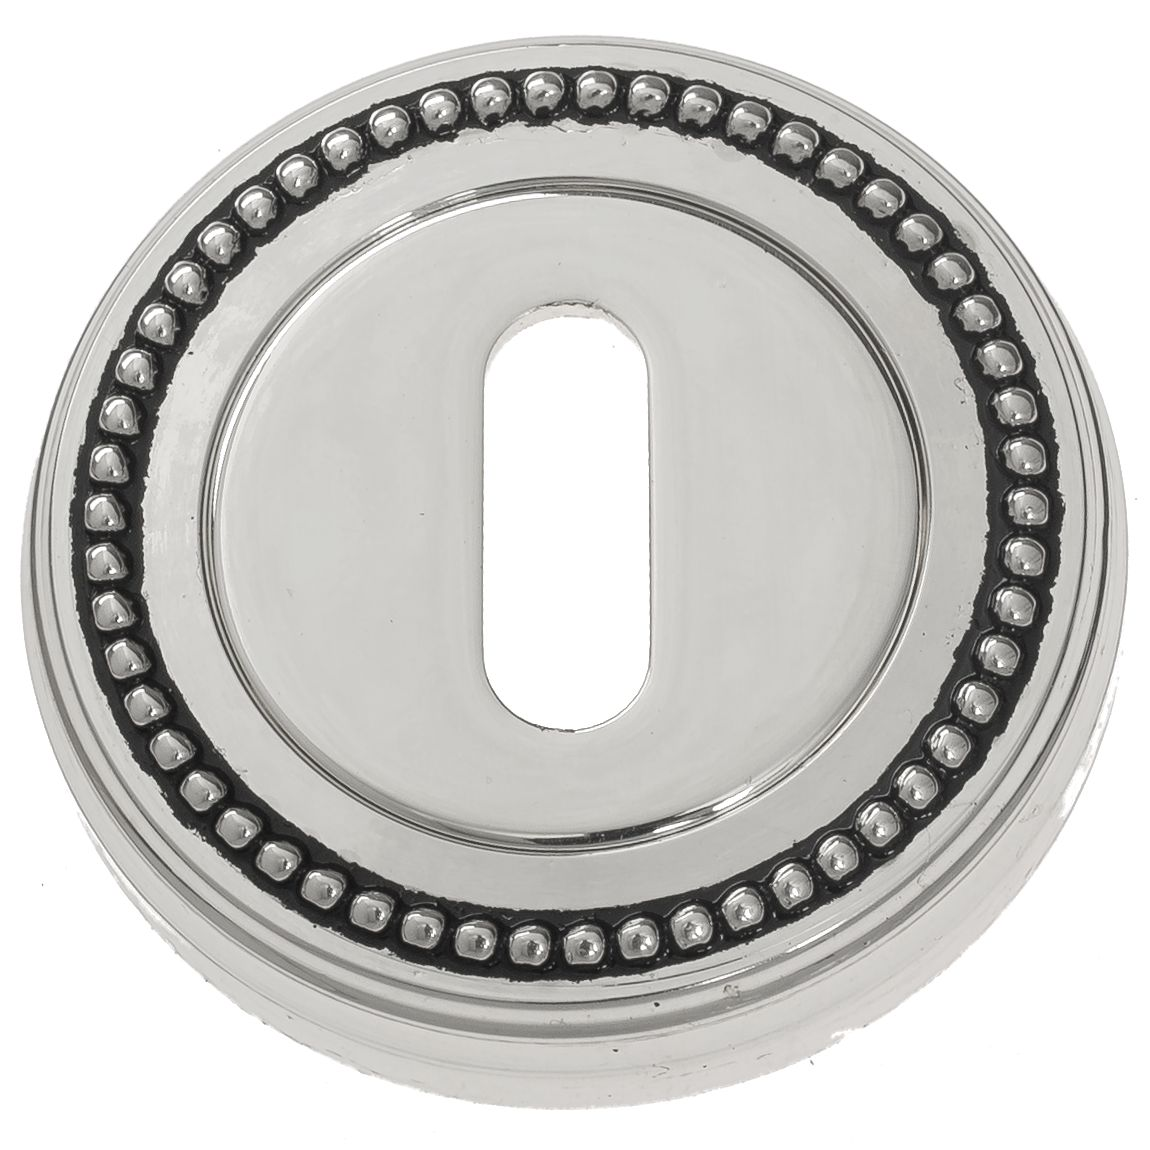 Keyhole Escutcheon Venezia KEY-1 D3 Natural Silver + Black